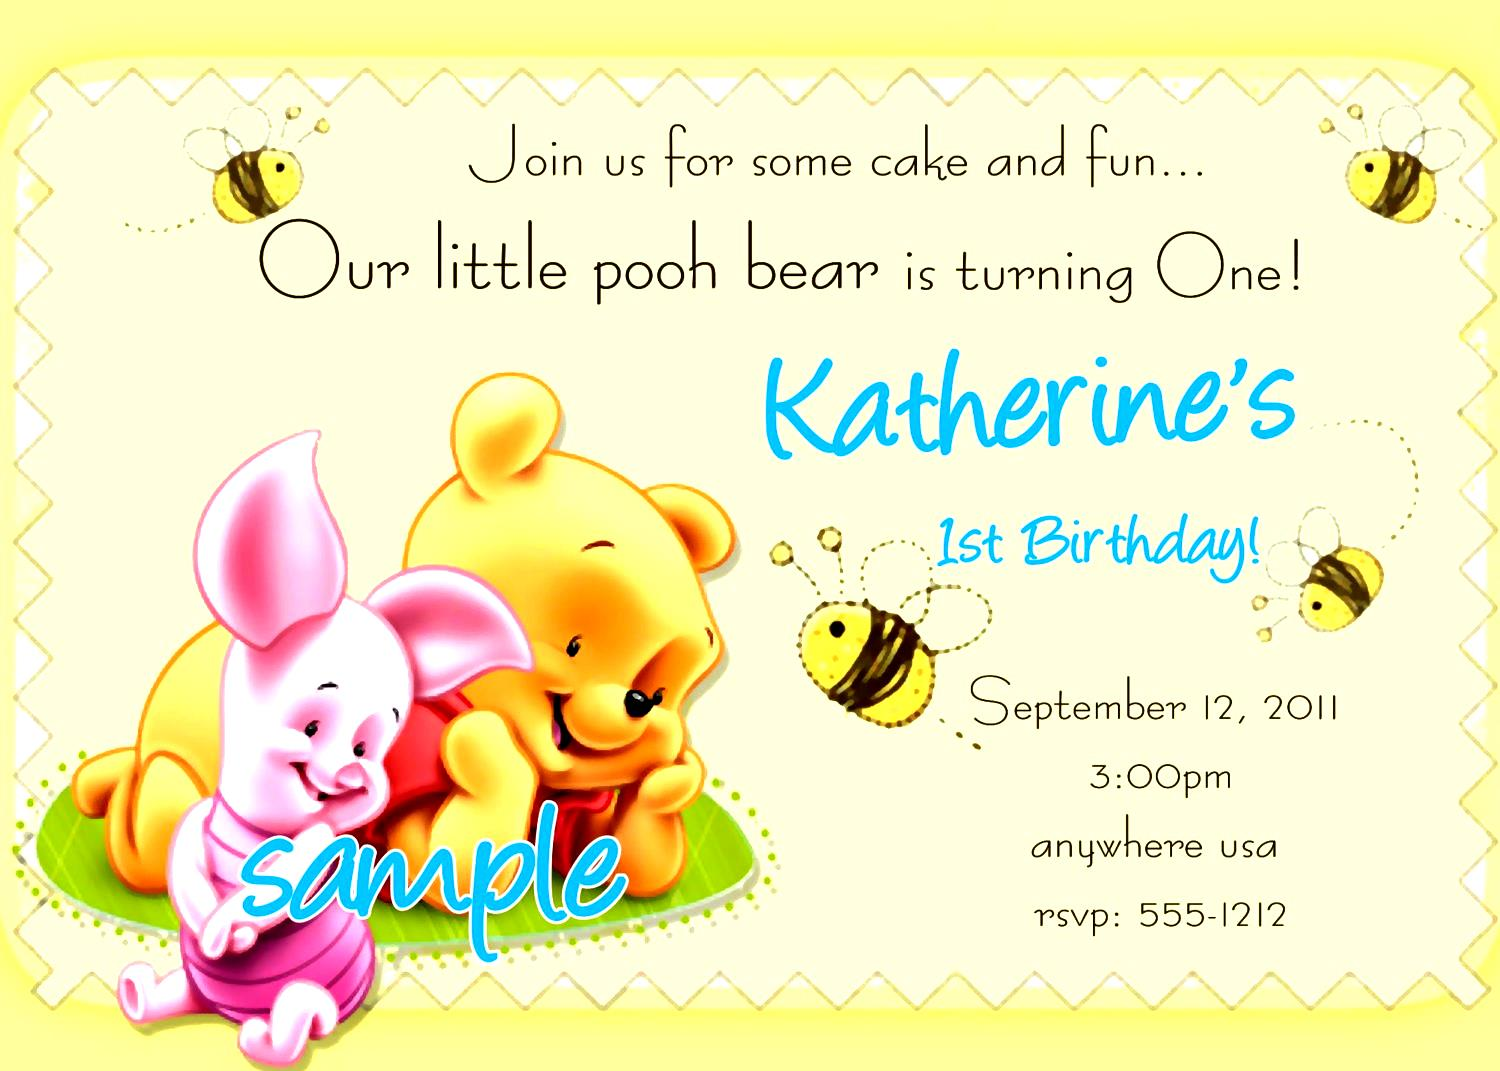 21 Kids Birthday Invitation Wording That We Can Make Sample – Kids Birthday Invitations Printable